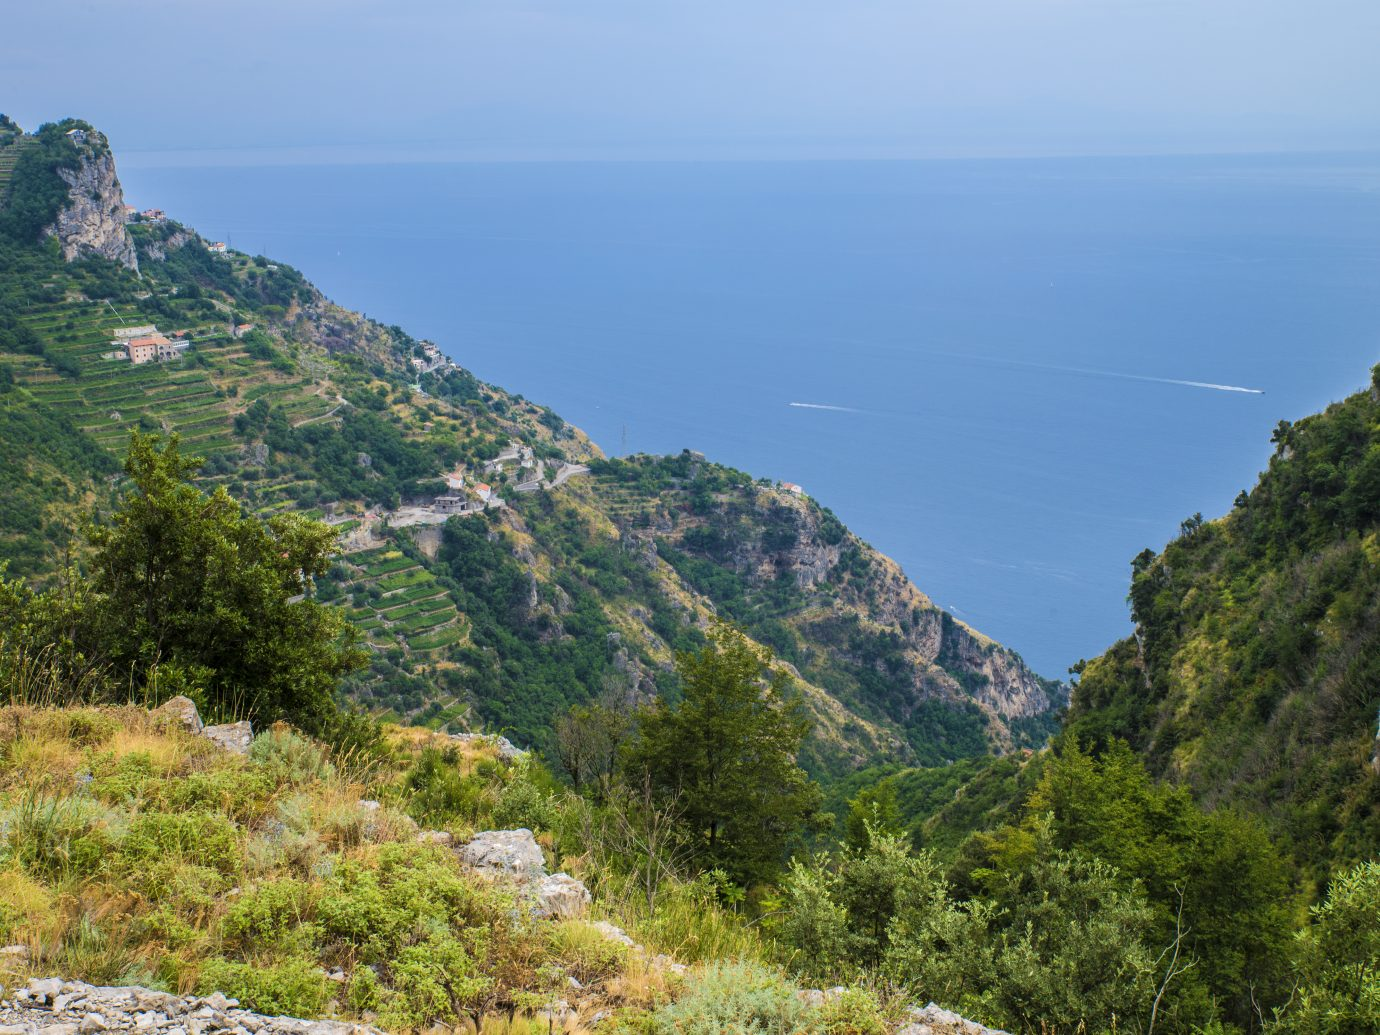 """Hiking trail on the Amalfi Coast: """"Sentiero degli dei"""" (God's way). A view from the trail down to the houses and sea."""